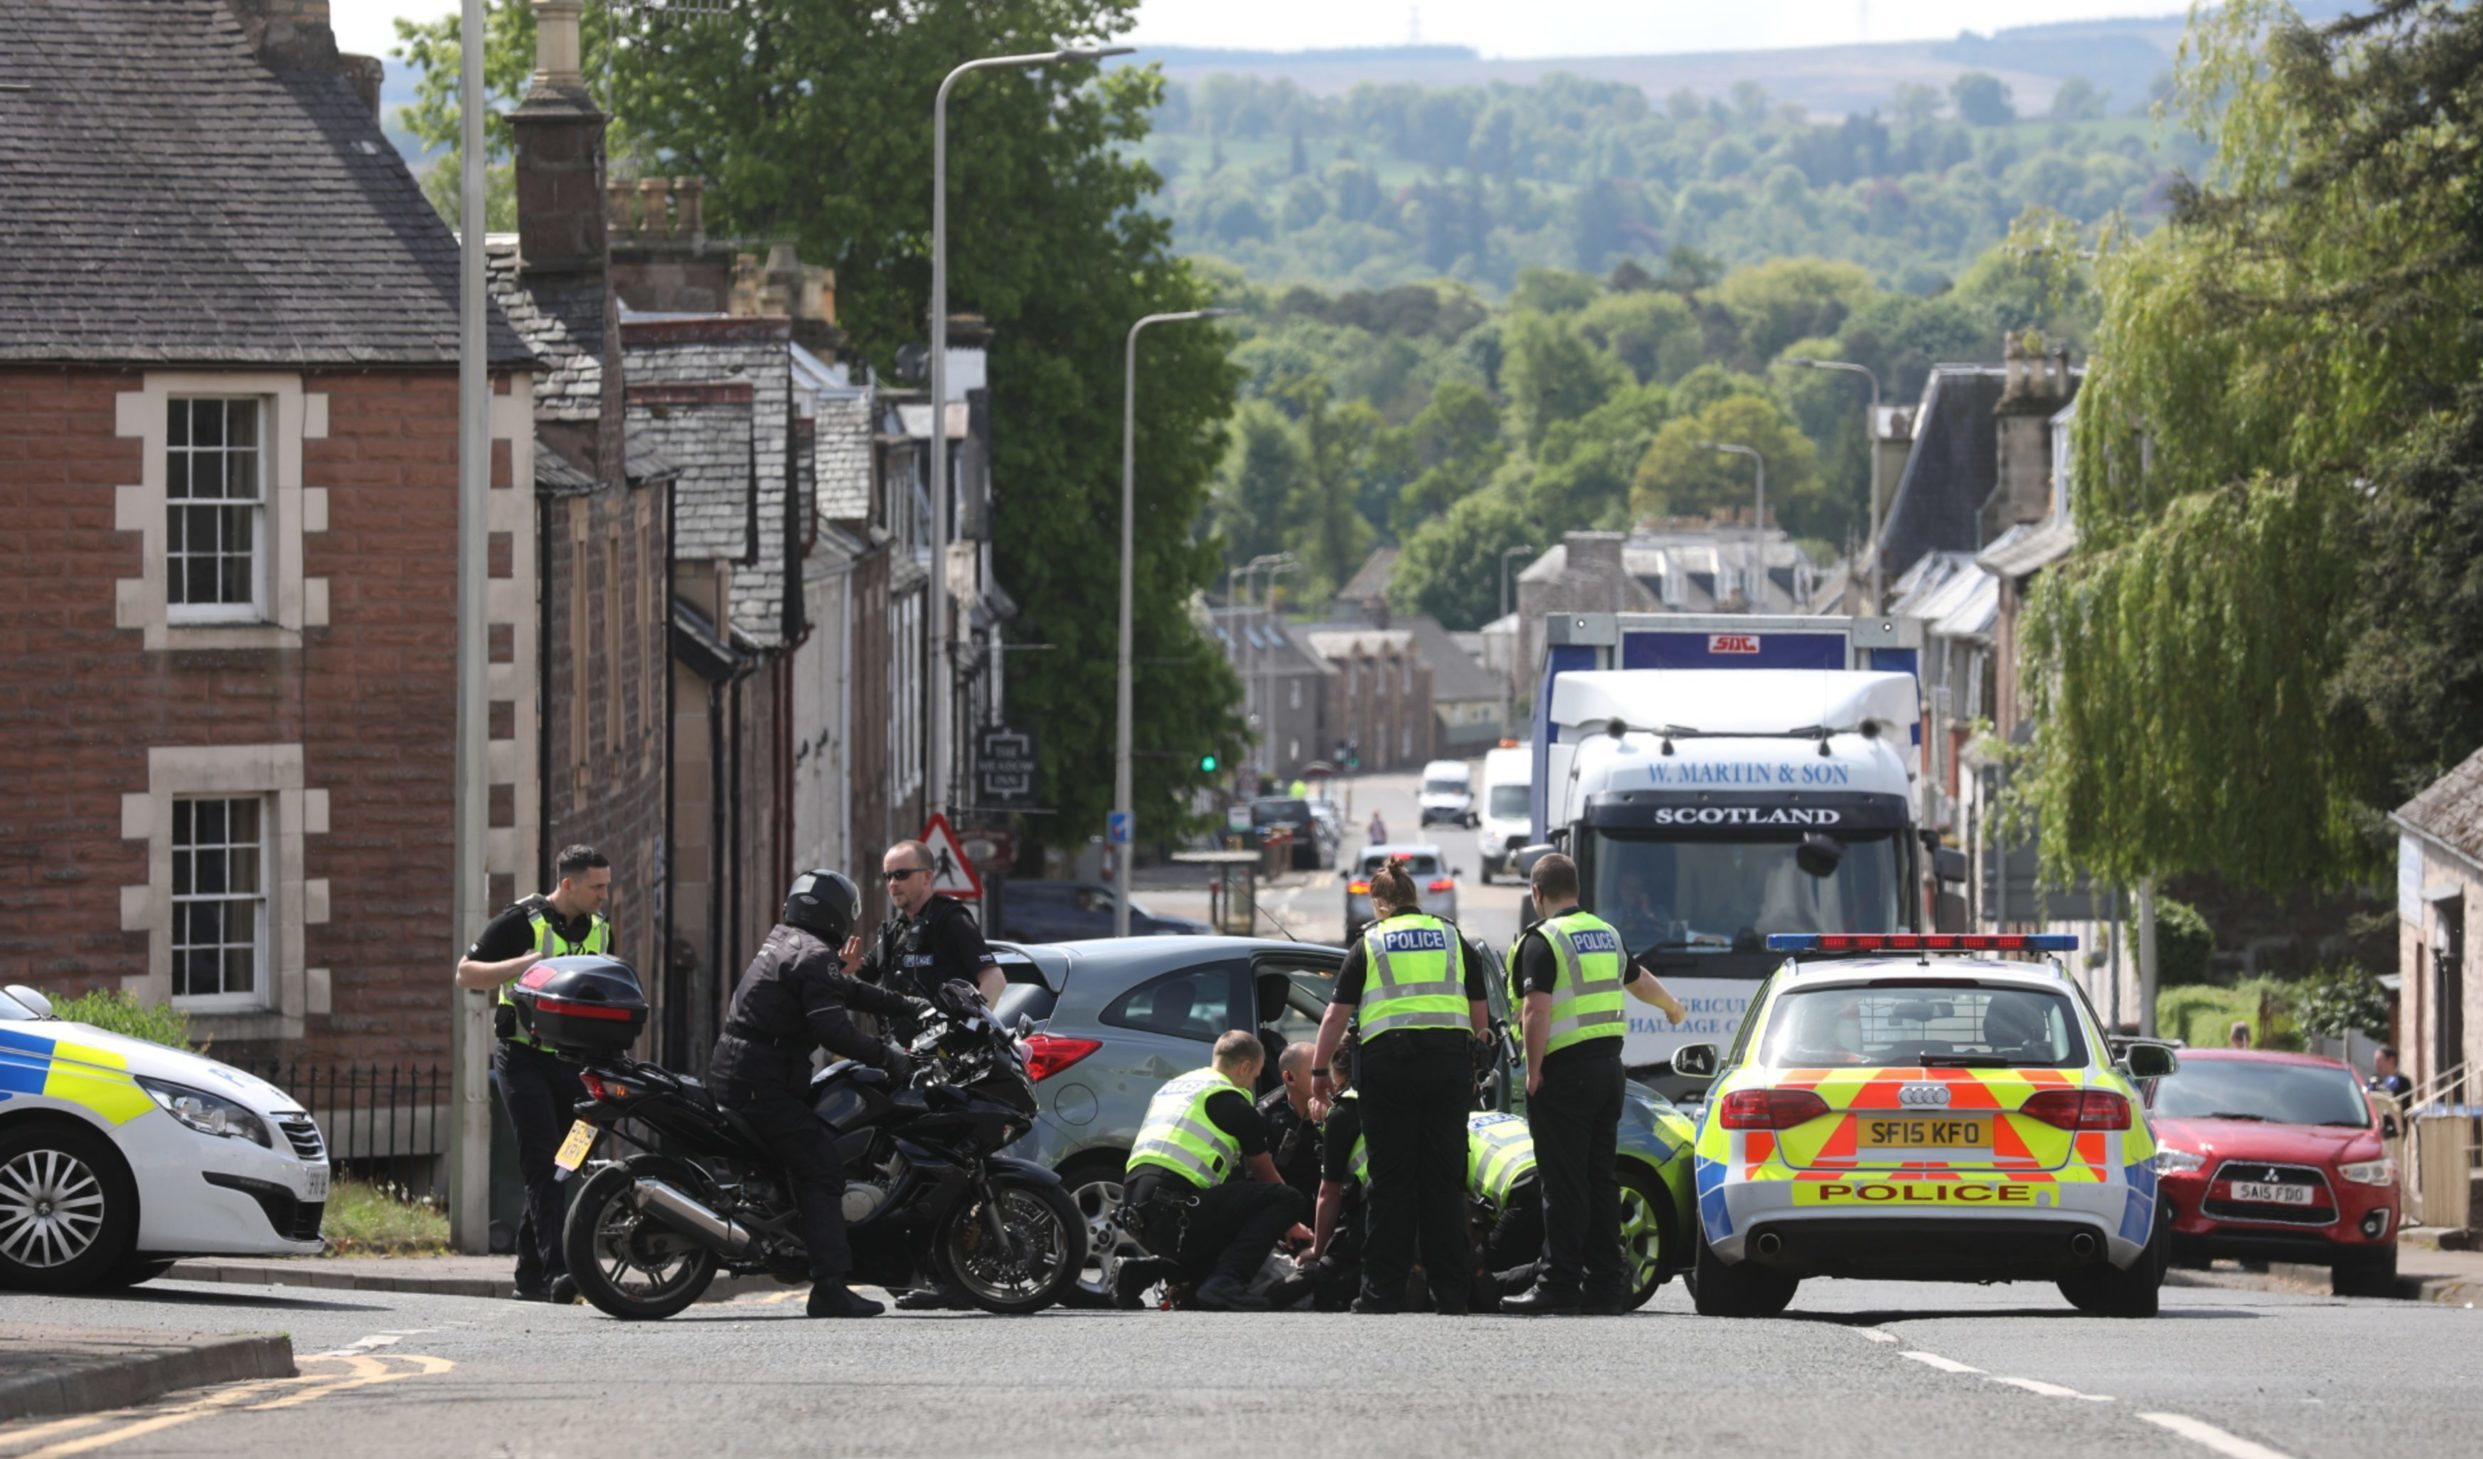 Police on the A85 in Crieff.